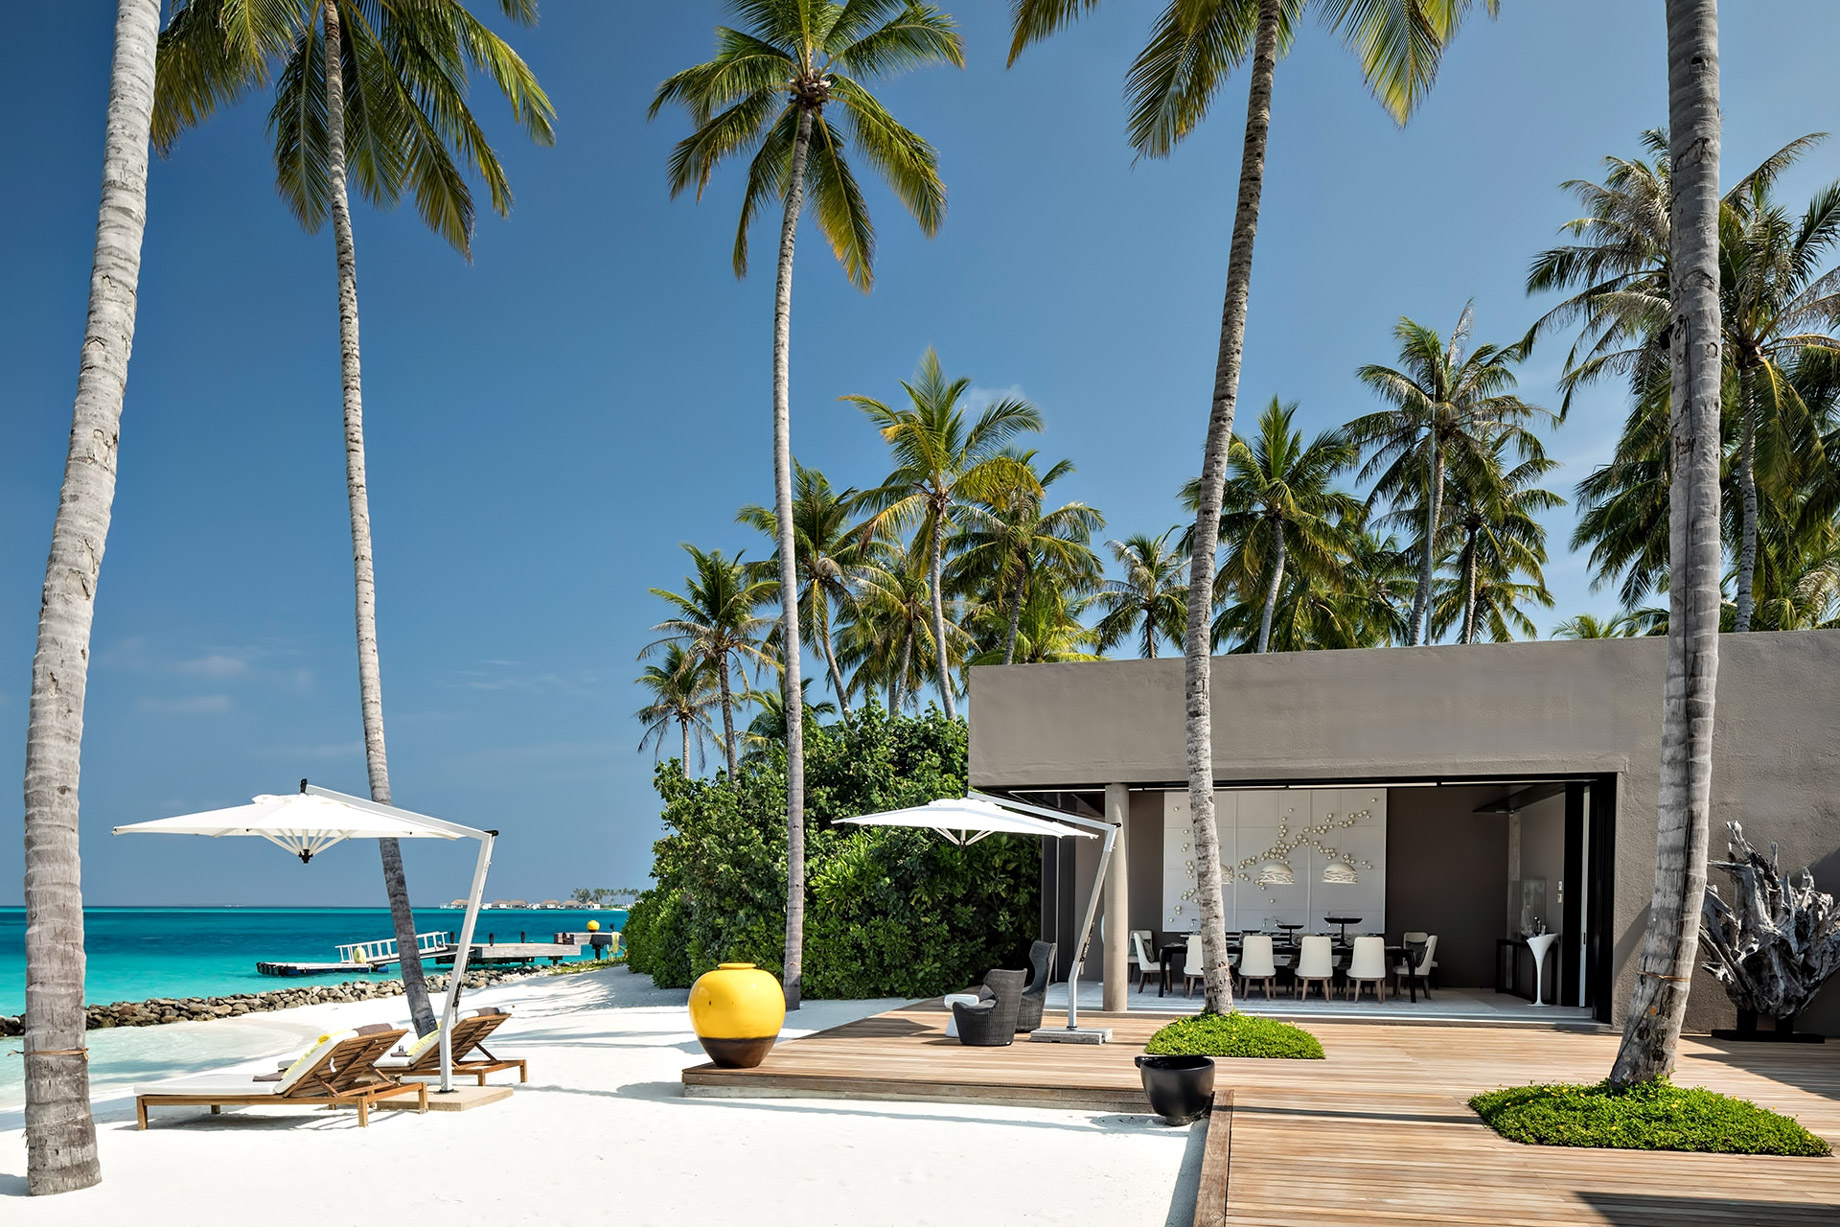 Cheval Blanc Randheli Luxury Resort - Noonu Atoll, Maldives - Exclusive Private Island Beachfront Villa